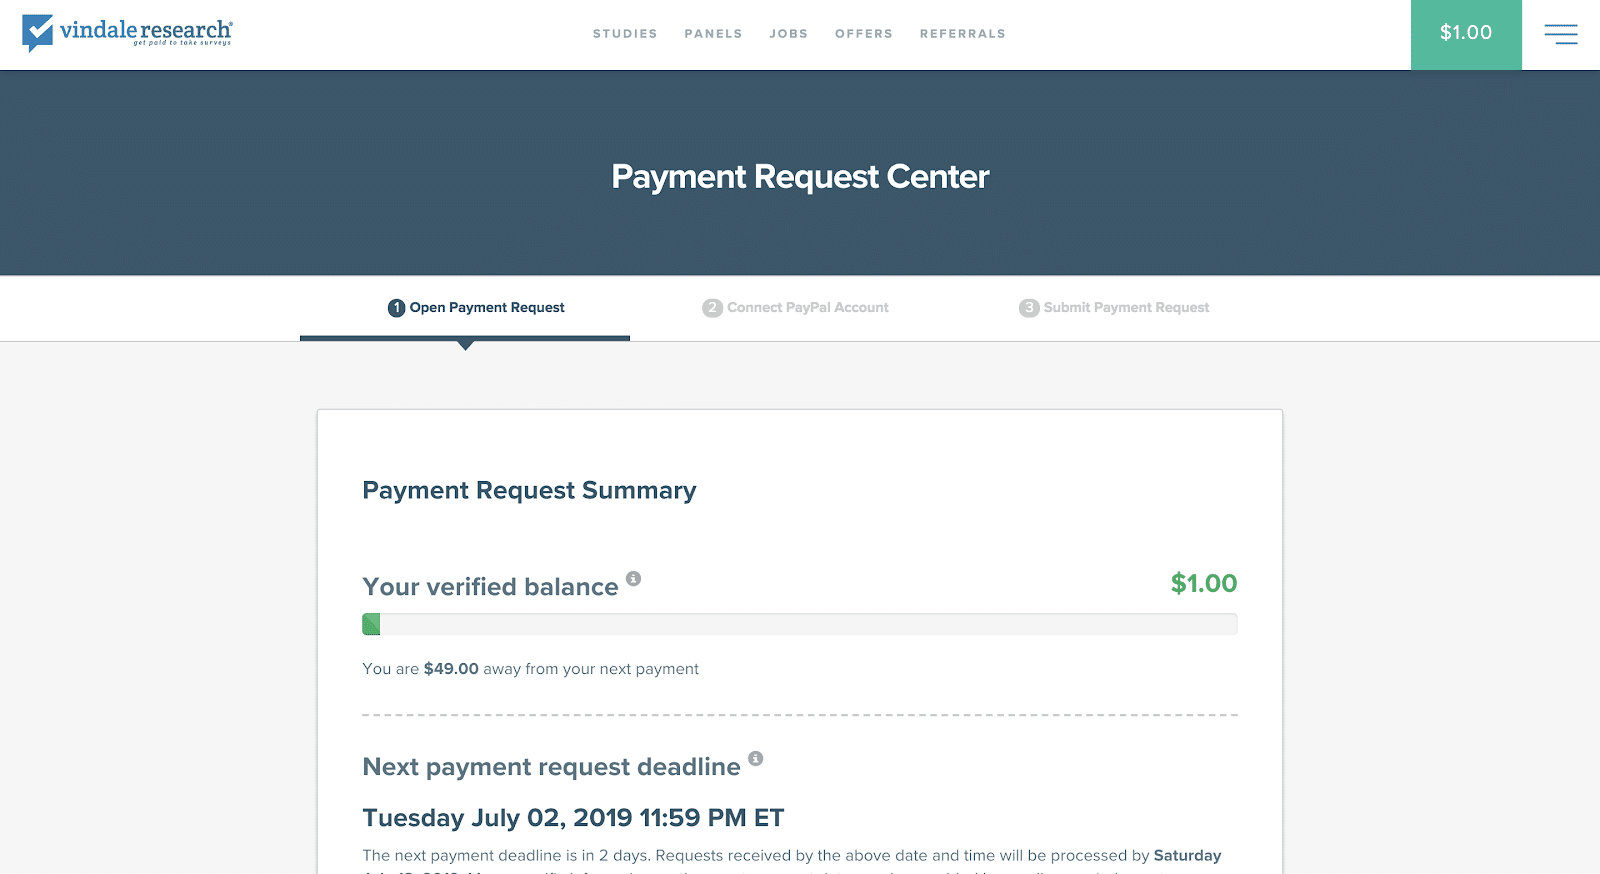 Screenshot of Vindale Research Payment Request Center